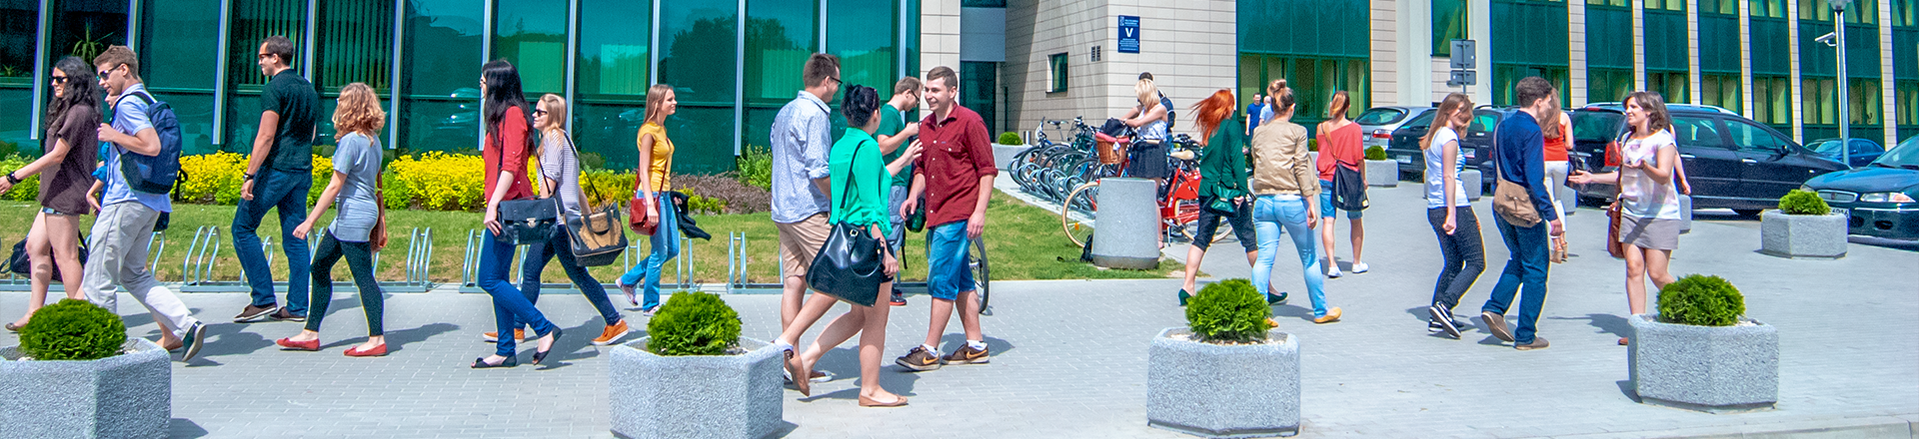 Study in English at The Rzeszow University of Technology